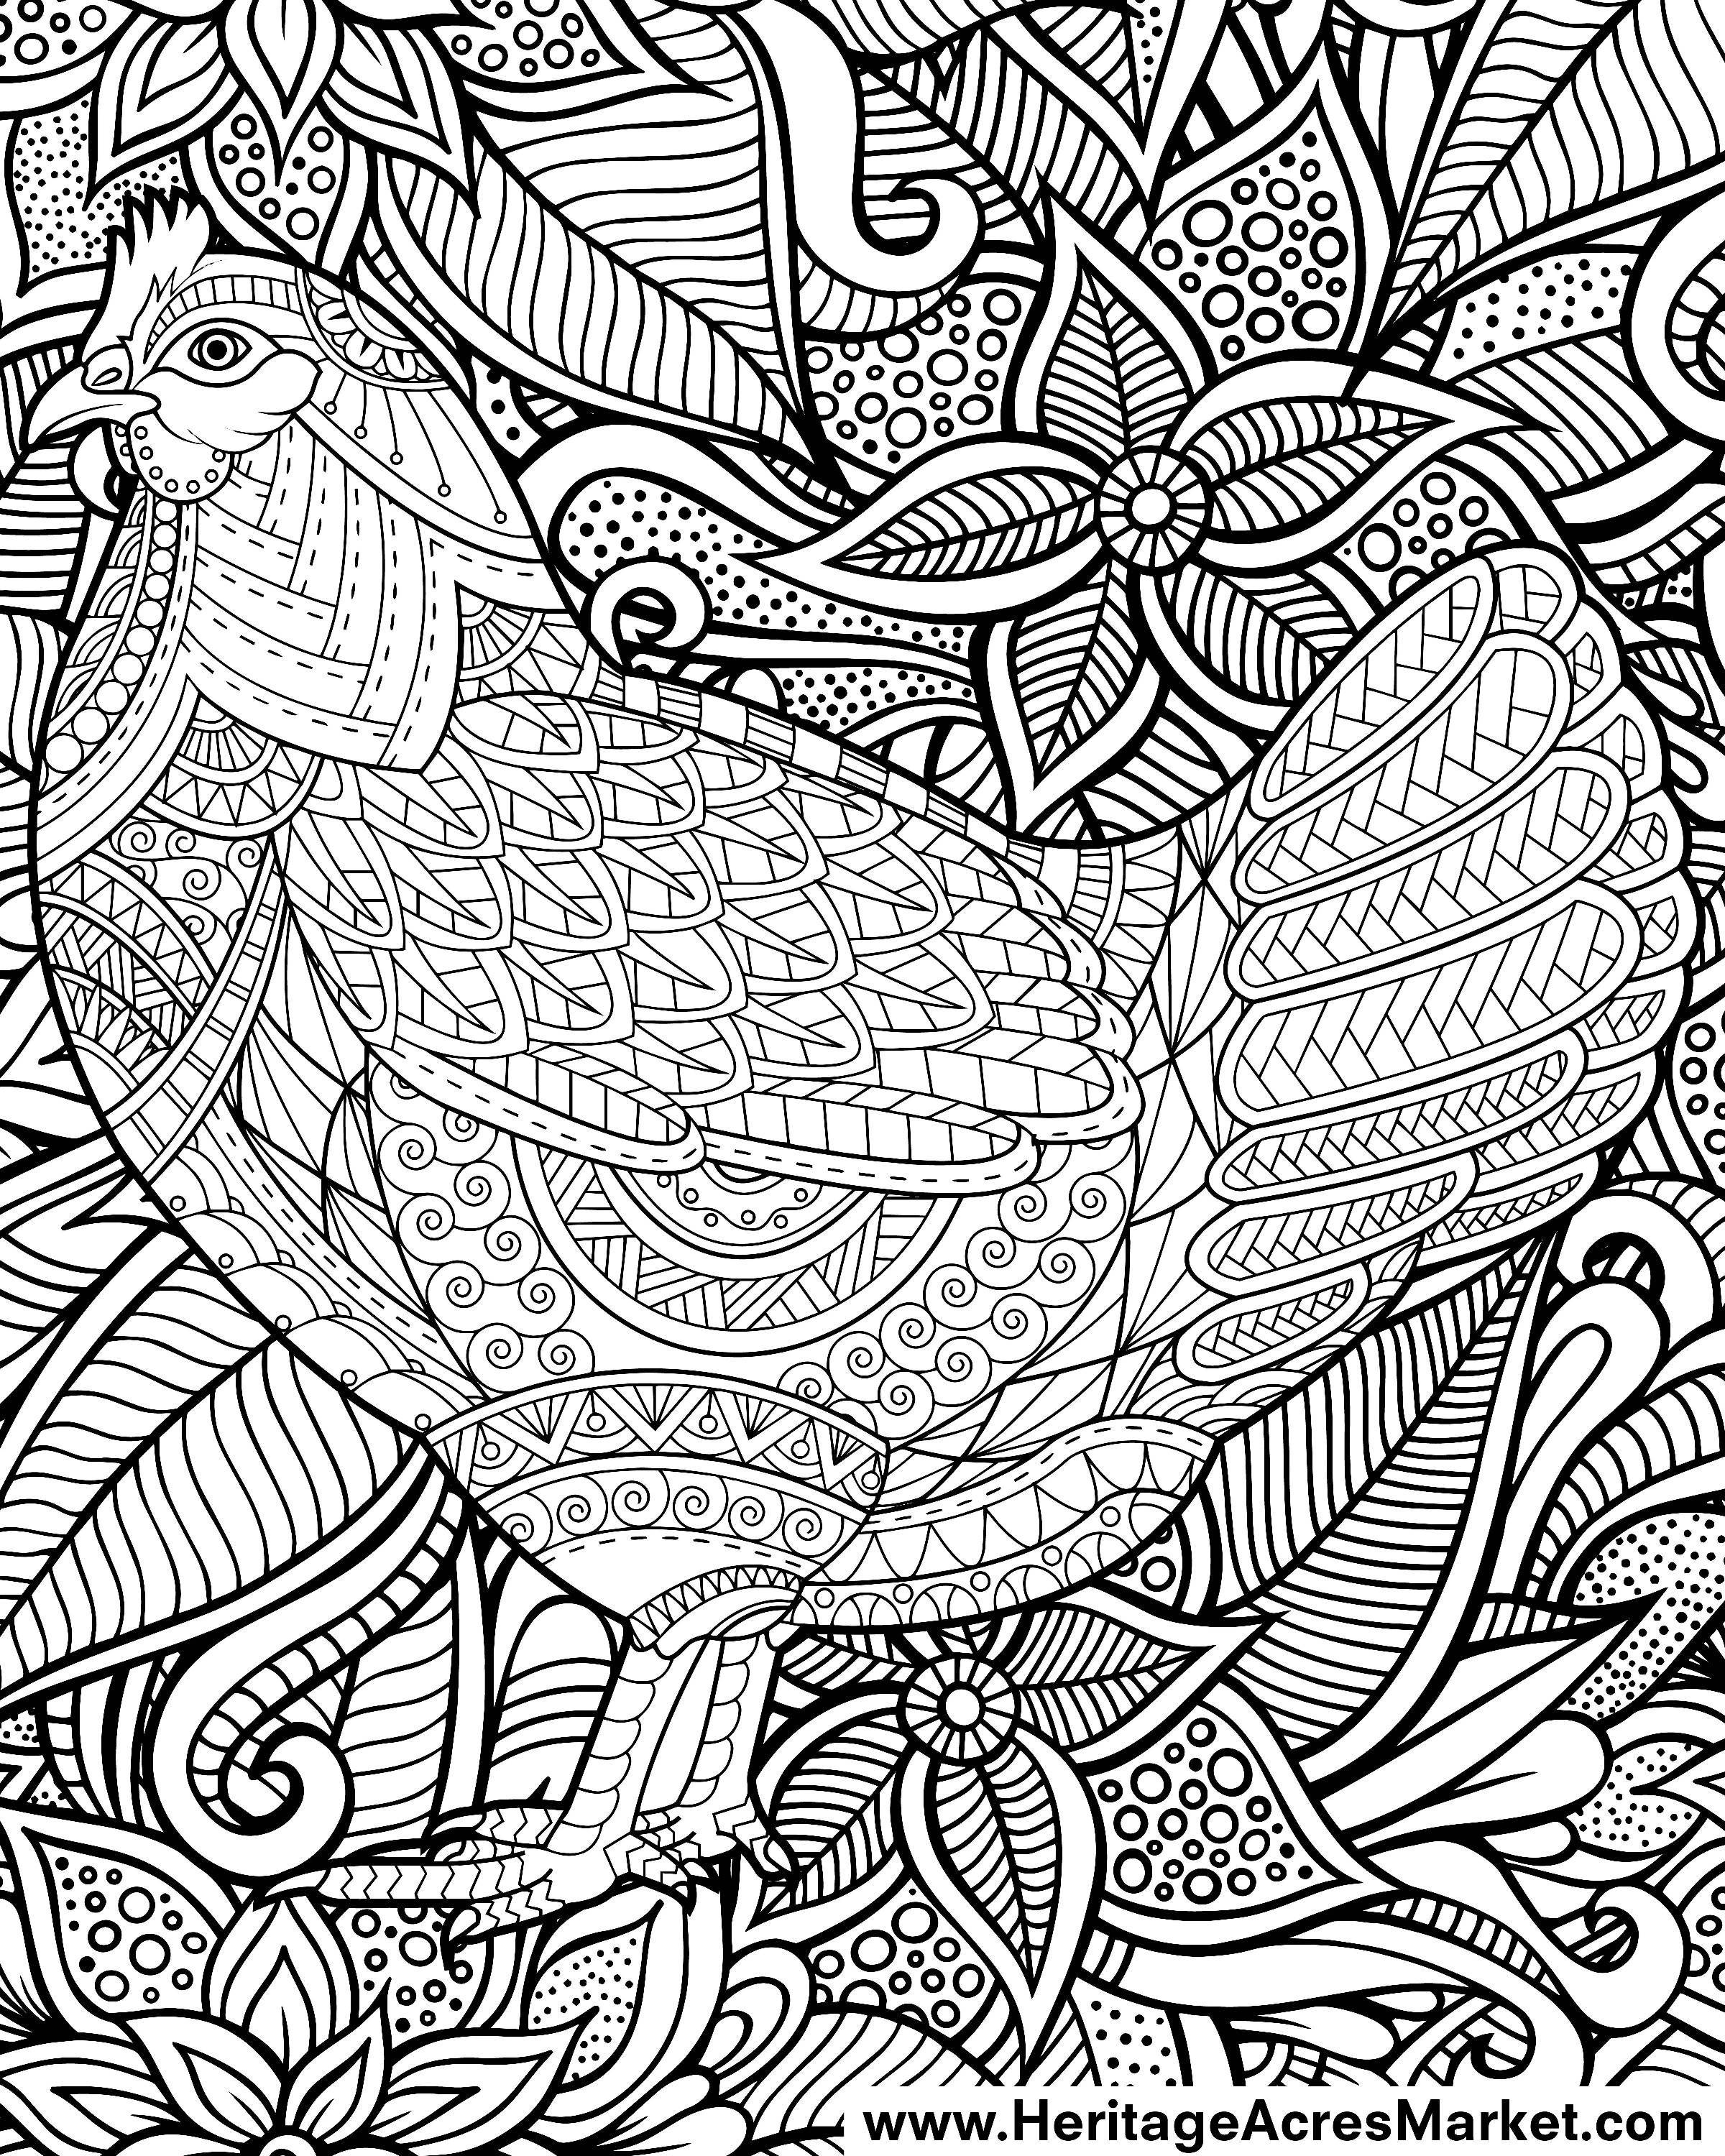 week 3 free coloring page funky chicken u2013 heritage acres market llc